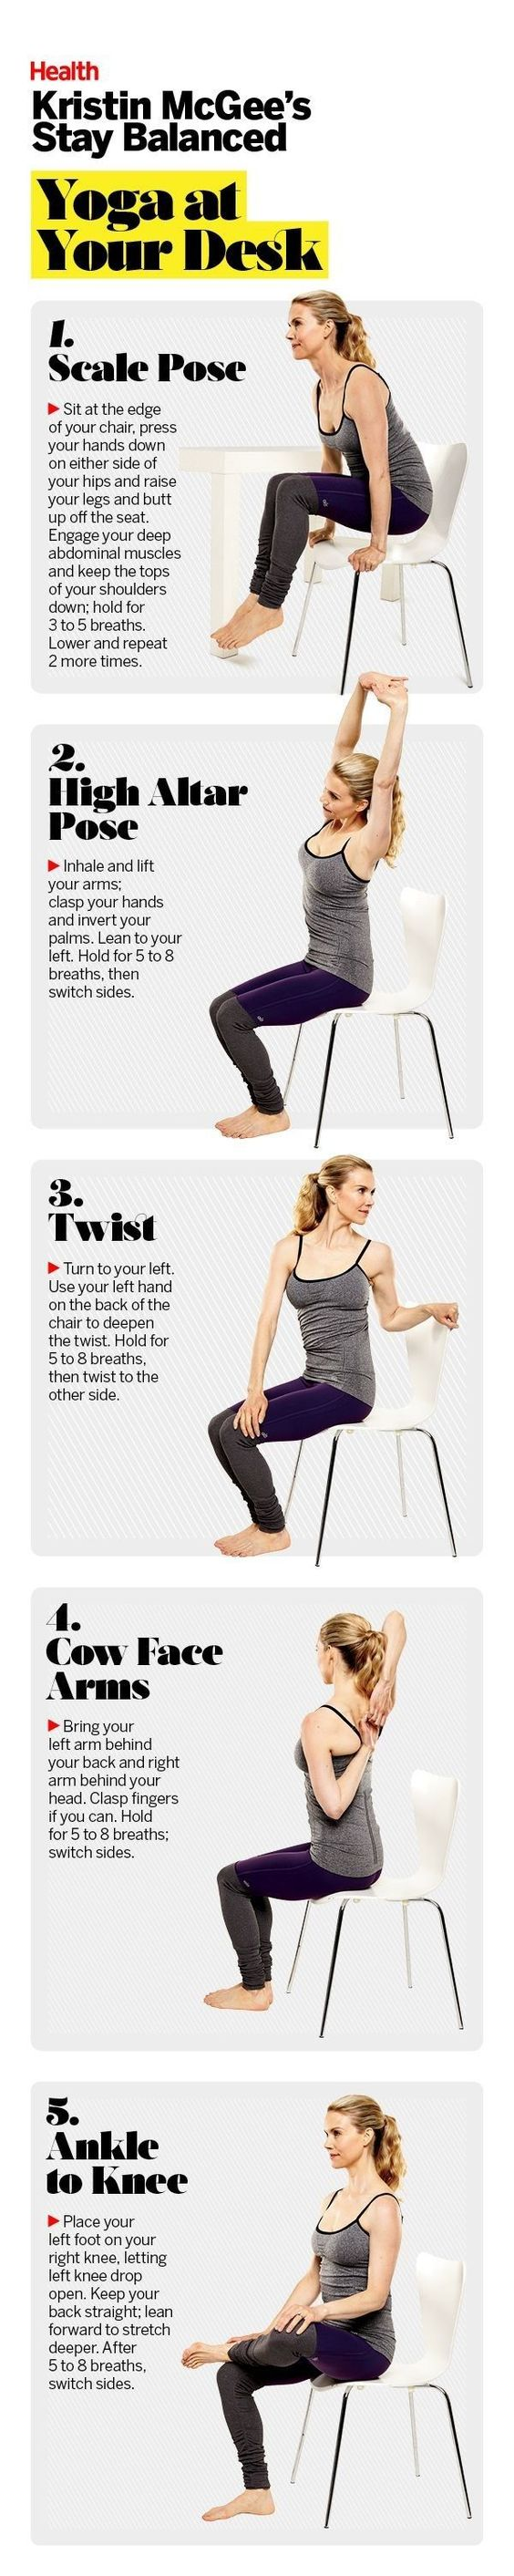 For doing yoga without leaving your chair: http://www.buzzfeed.com/sallytamarkin/always-be-watching-tv?crlt.pid=camp.fTmUmpFjsaBV